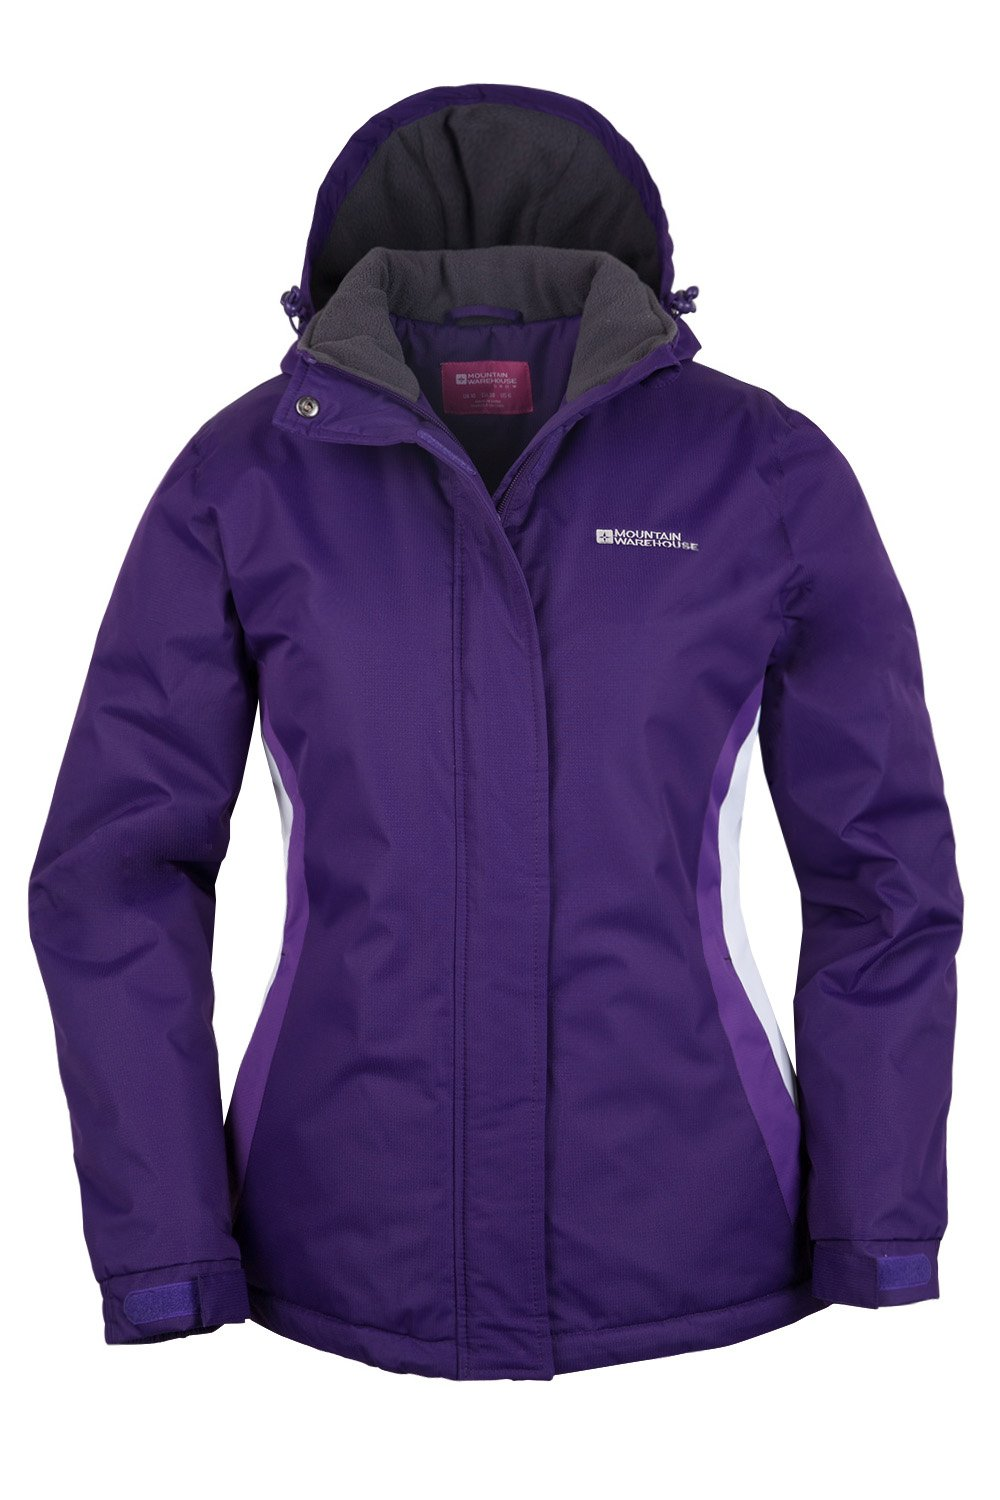 Mountain Warehouse Moon Womens Ski Jacket